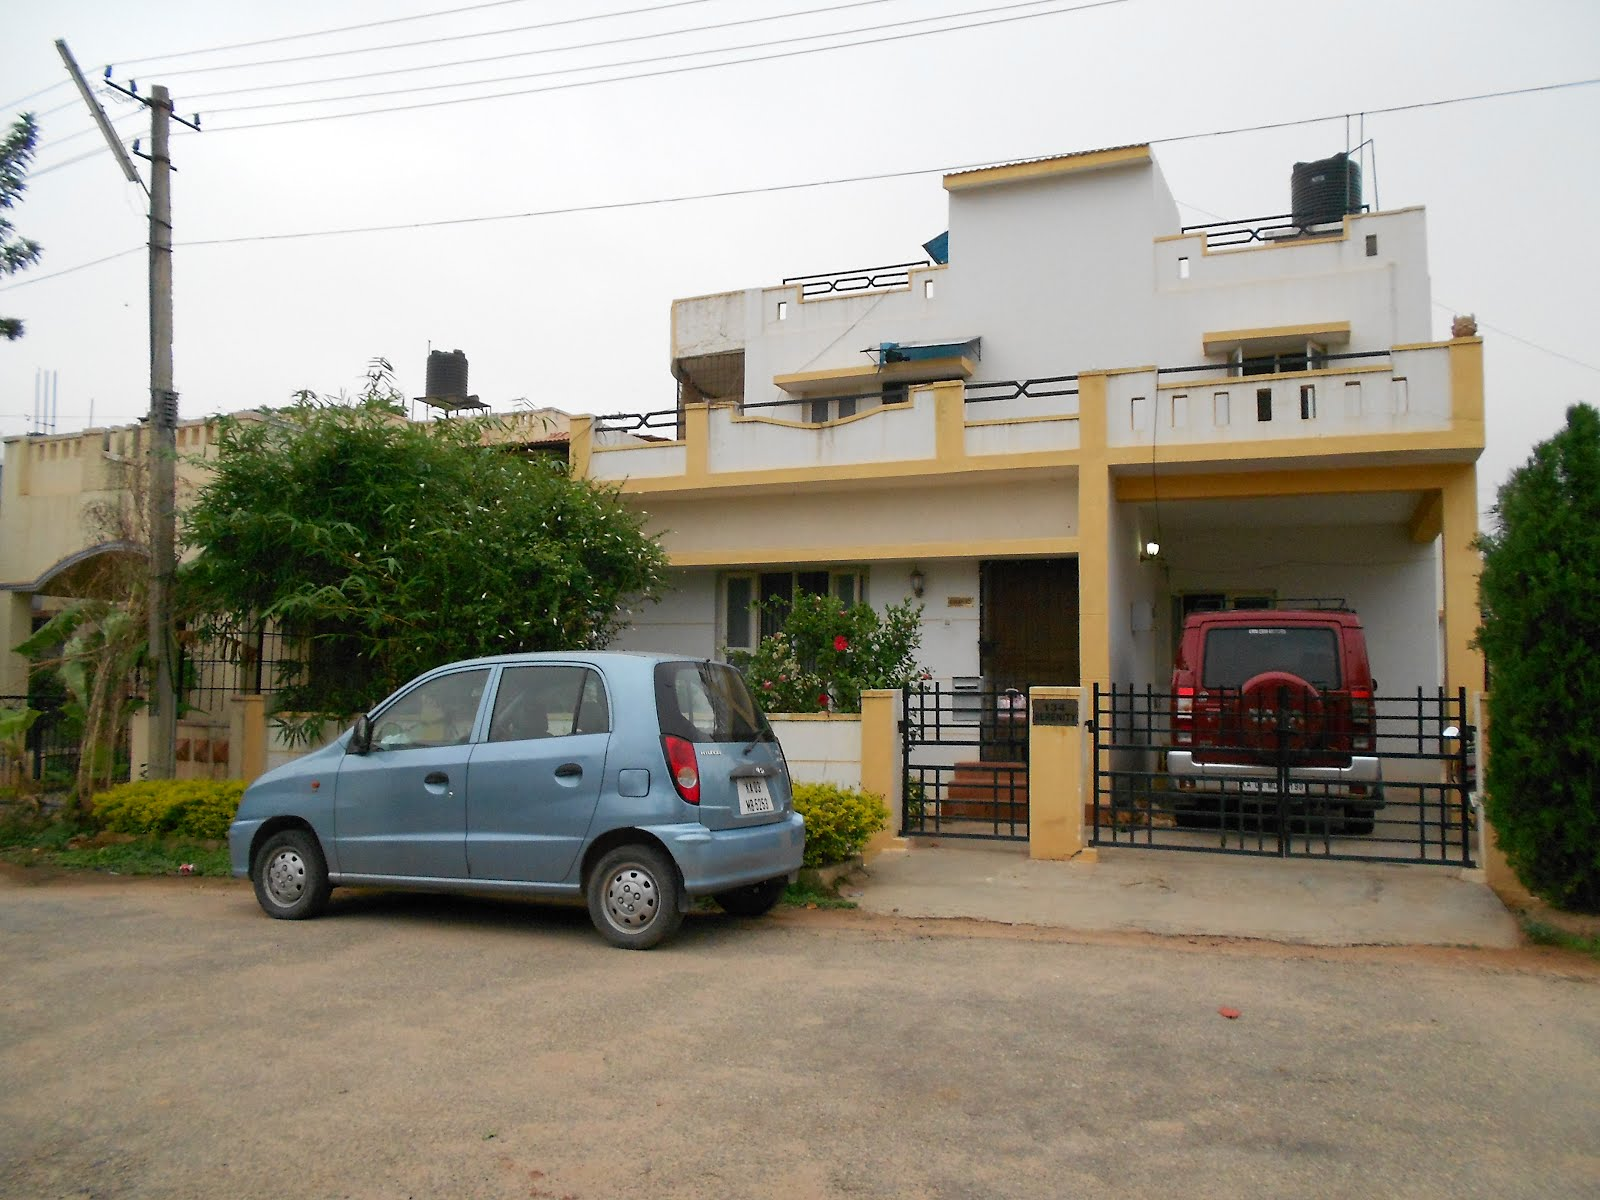 Very nice house and car see not all indians are poor